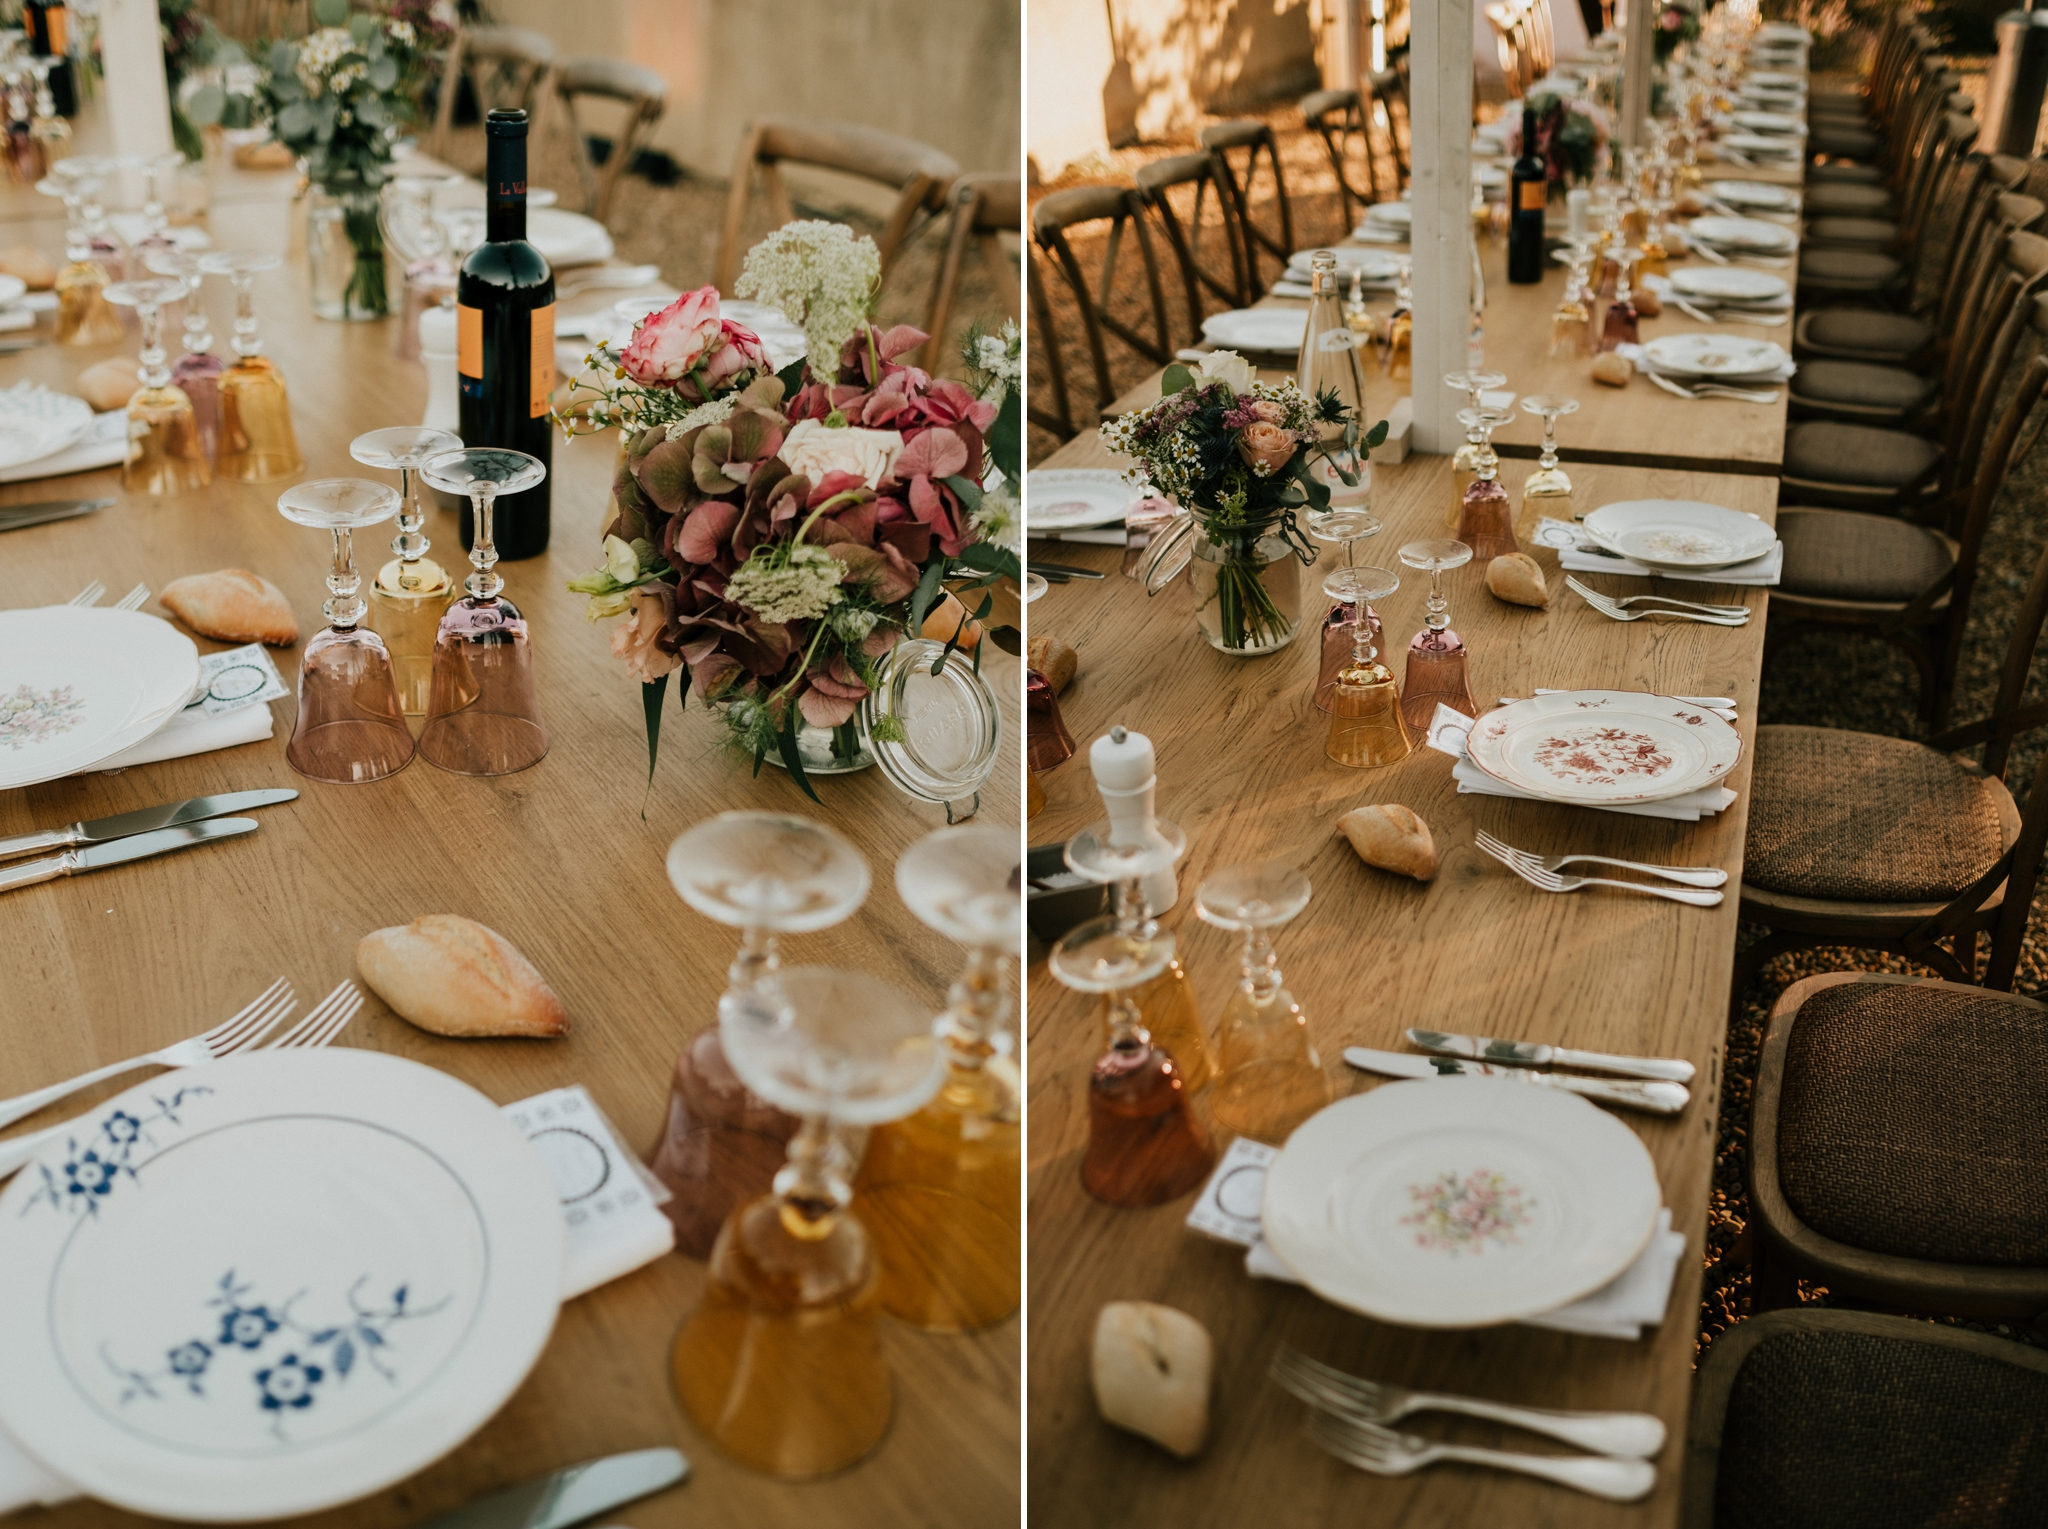 Lucy-till-french-wedding-planner-south-of-france